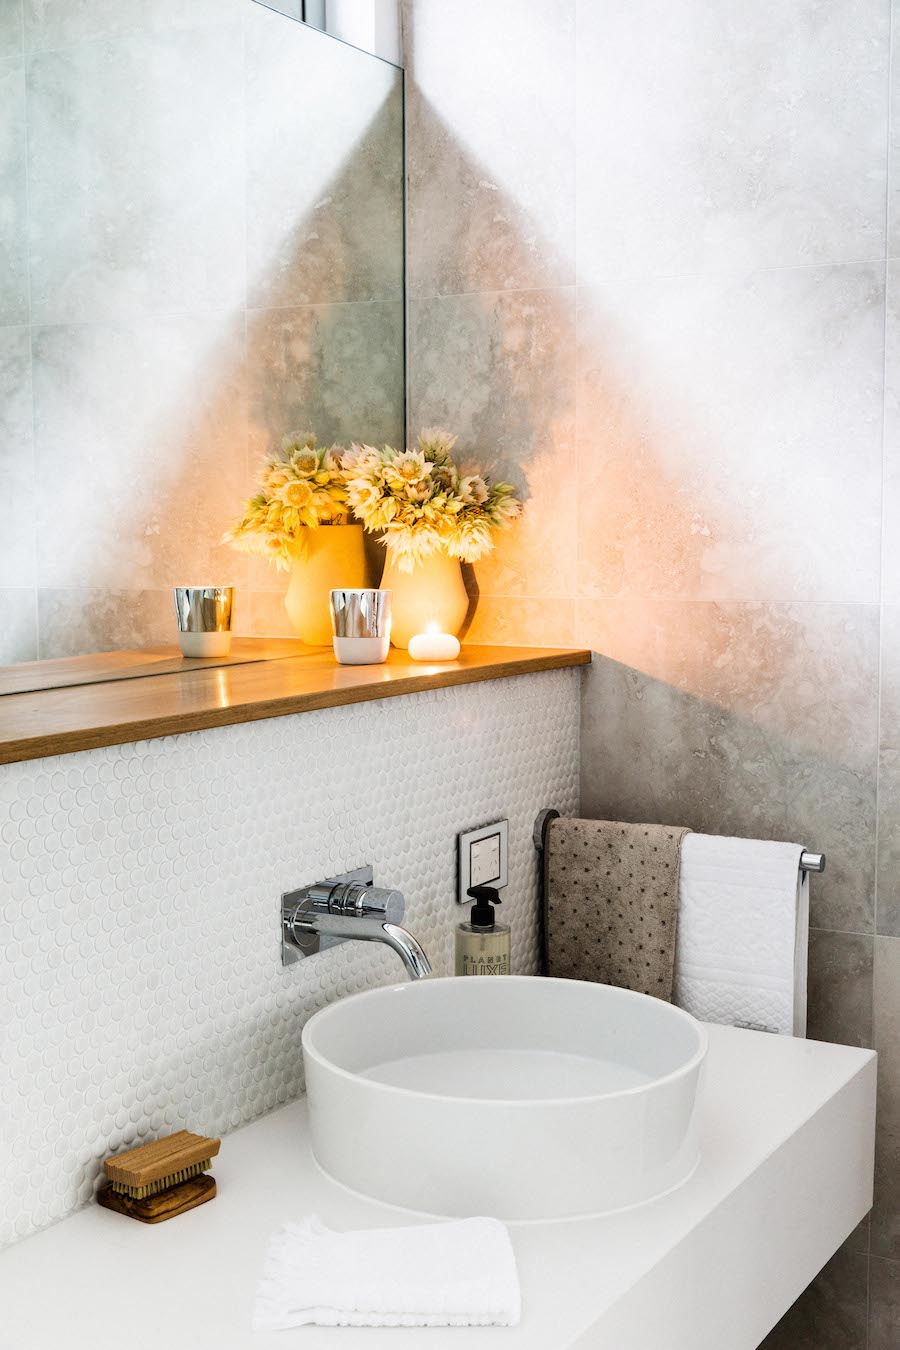 Design Tips If You Have A Small Bathroom